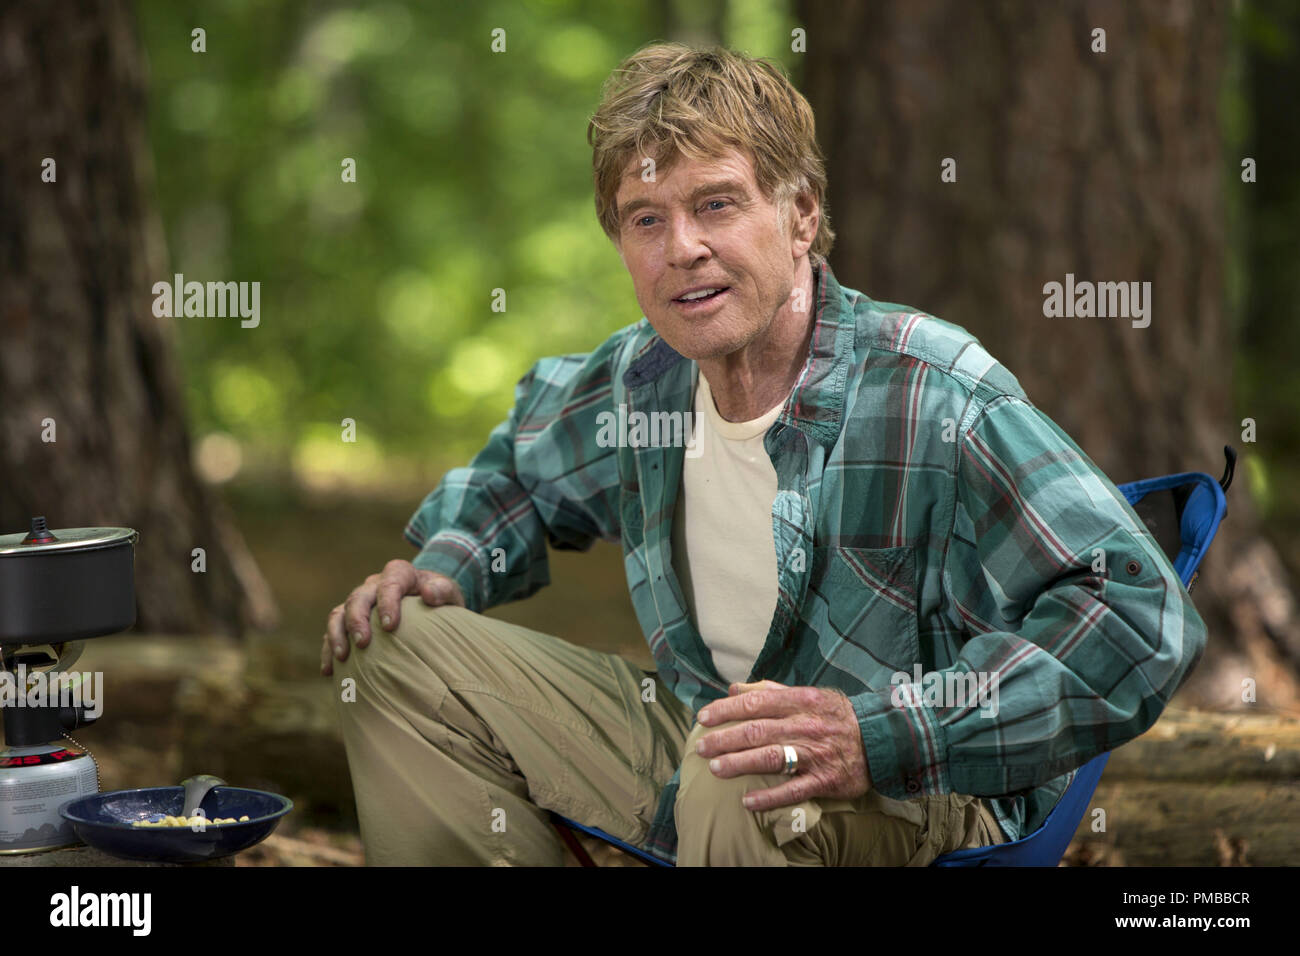 Robert Redford Stars As Bill Bryson Hiking Along The Appalachian Trail In Broad Green Pictures Upcoming Release A Walk In The Woods Stock Photo Alamy